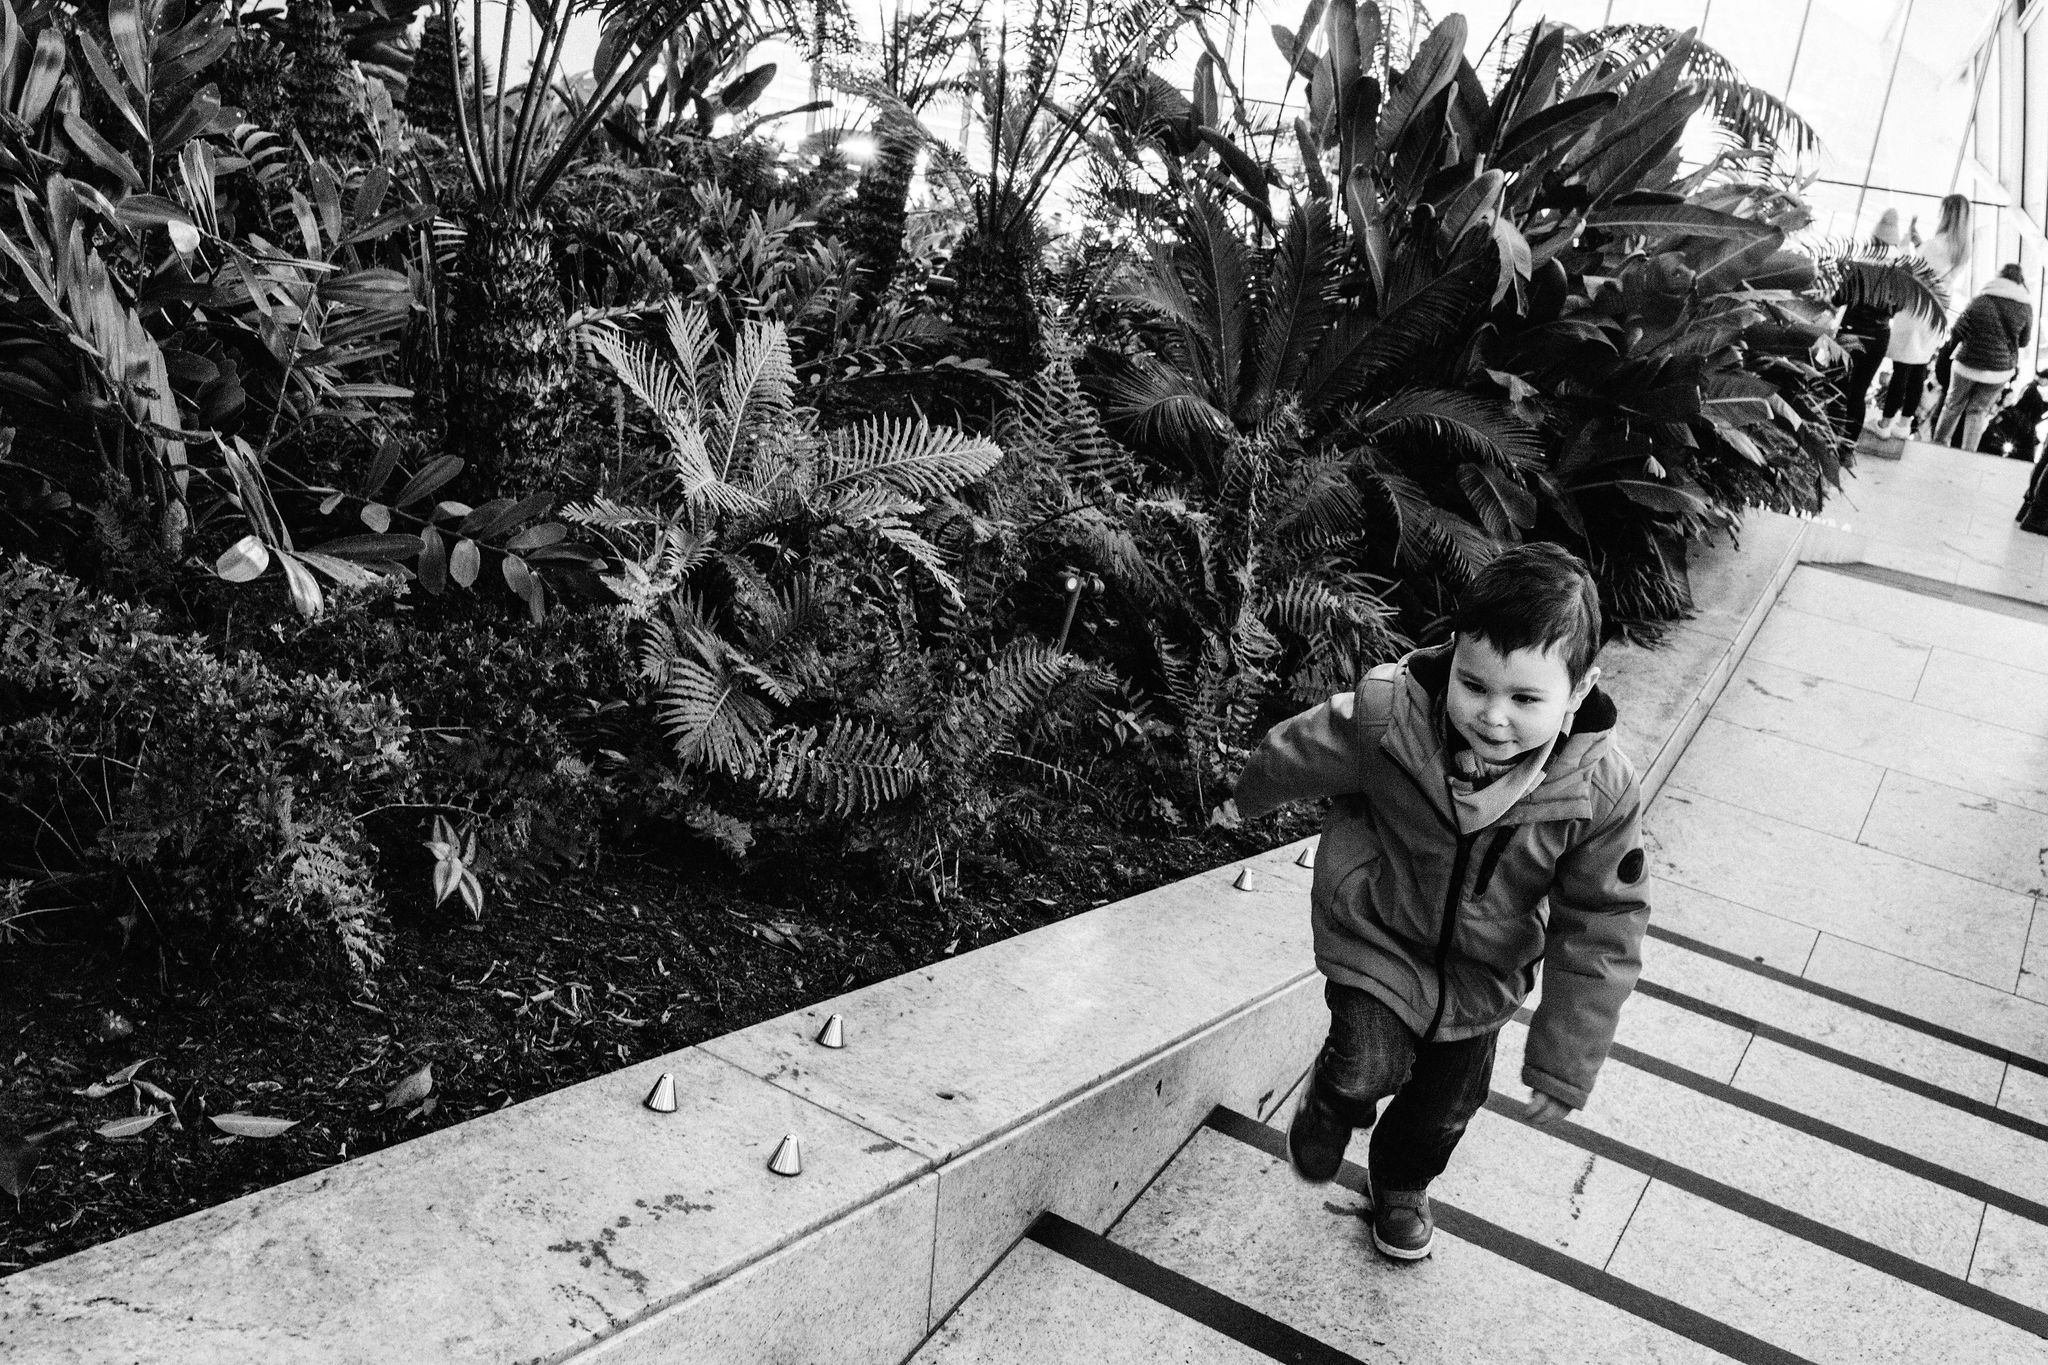 Child climbing up stairs at Skygarden during London photoshoot